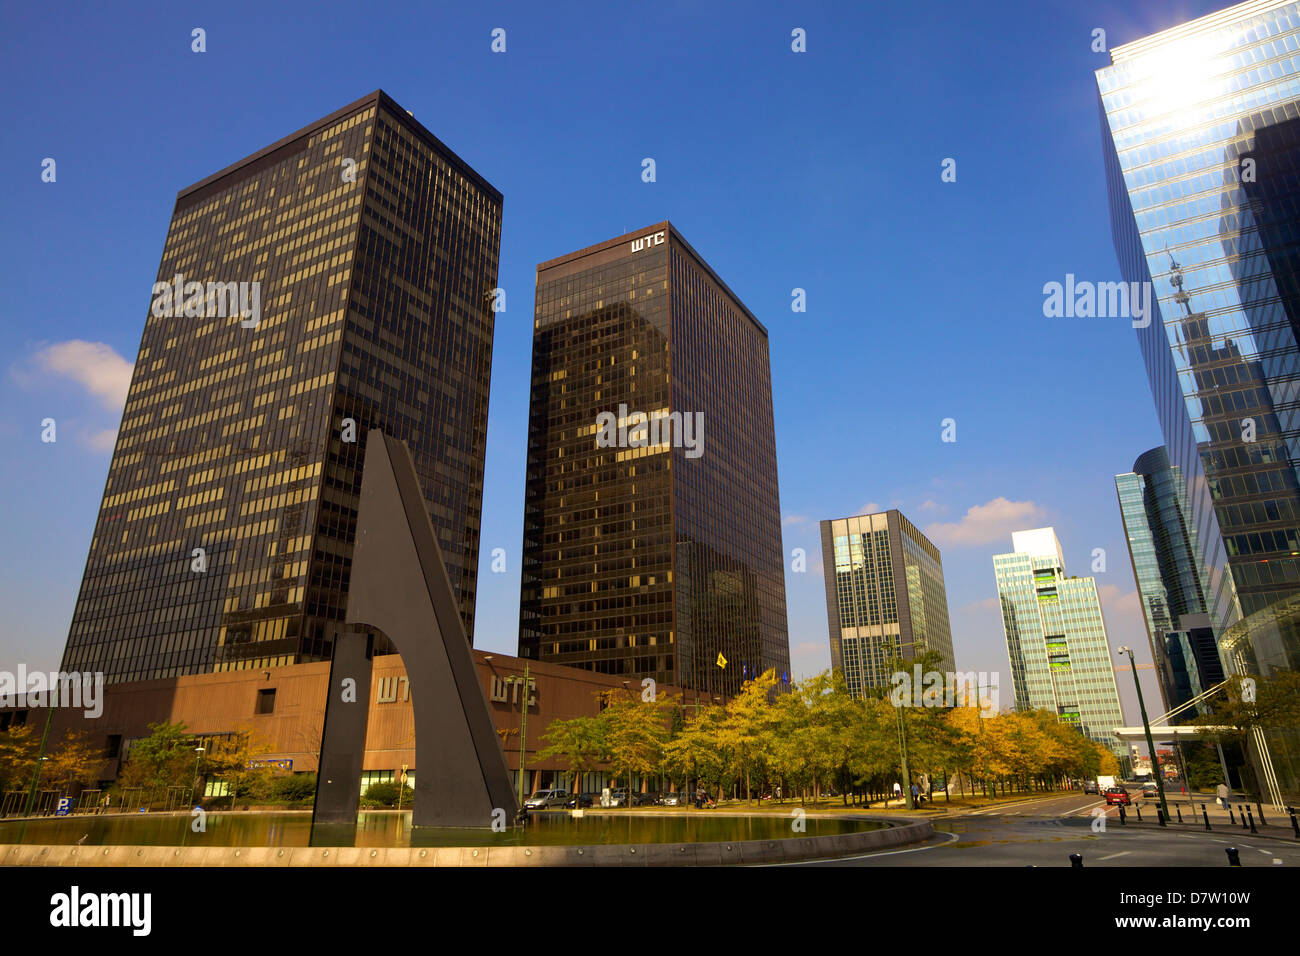 World Trade Centre, Brussels, Belgium - Stock Image